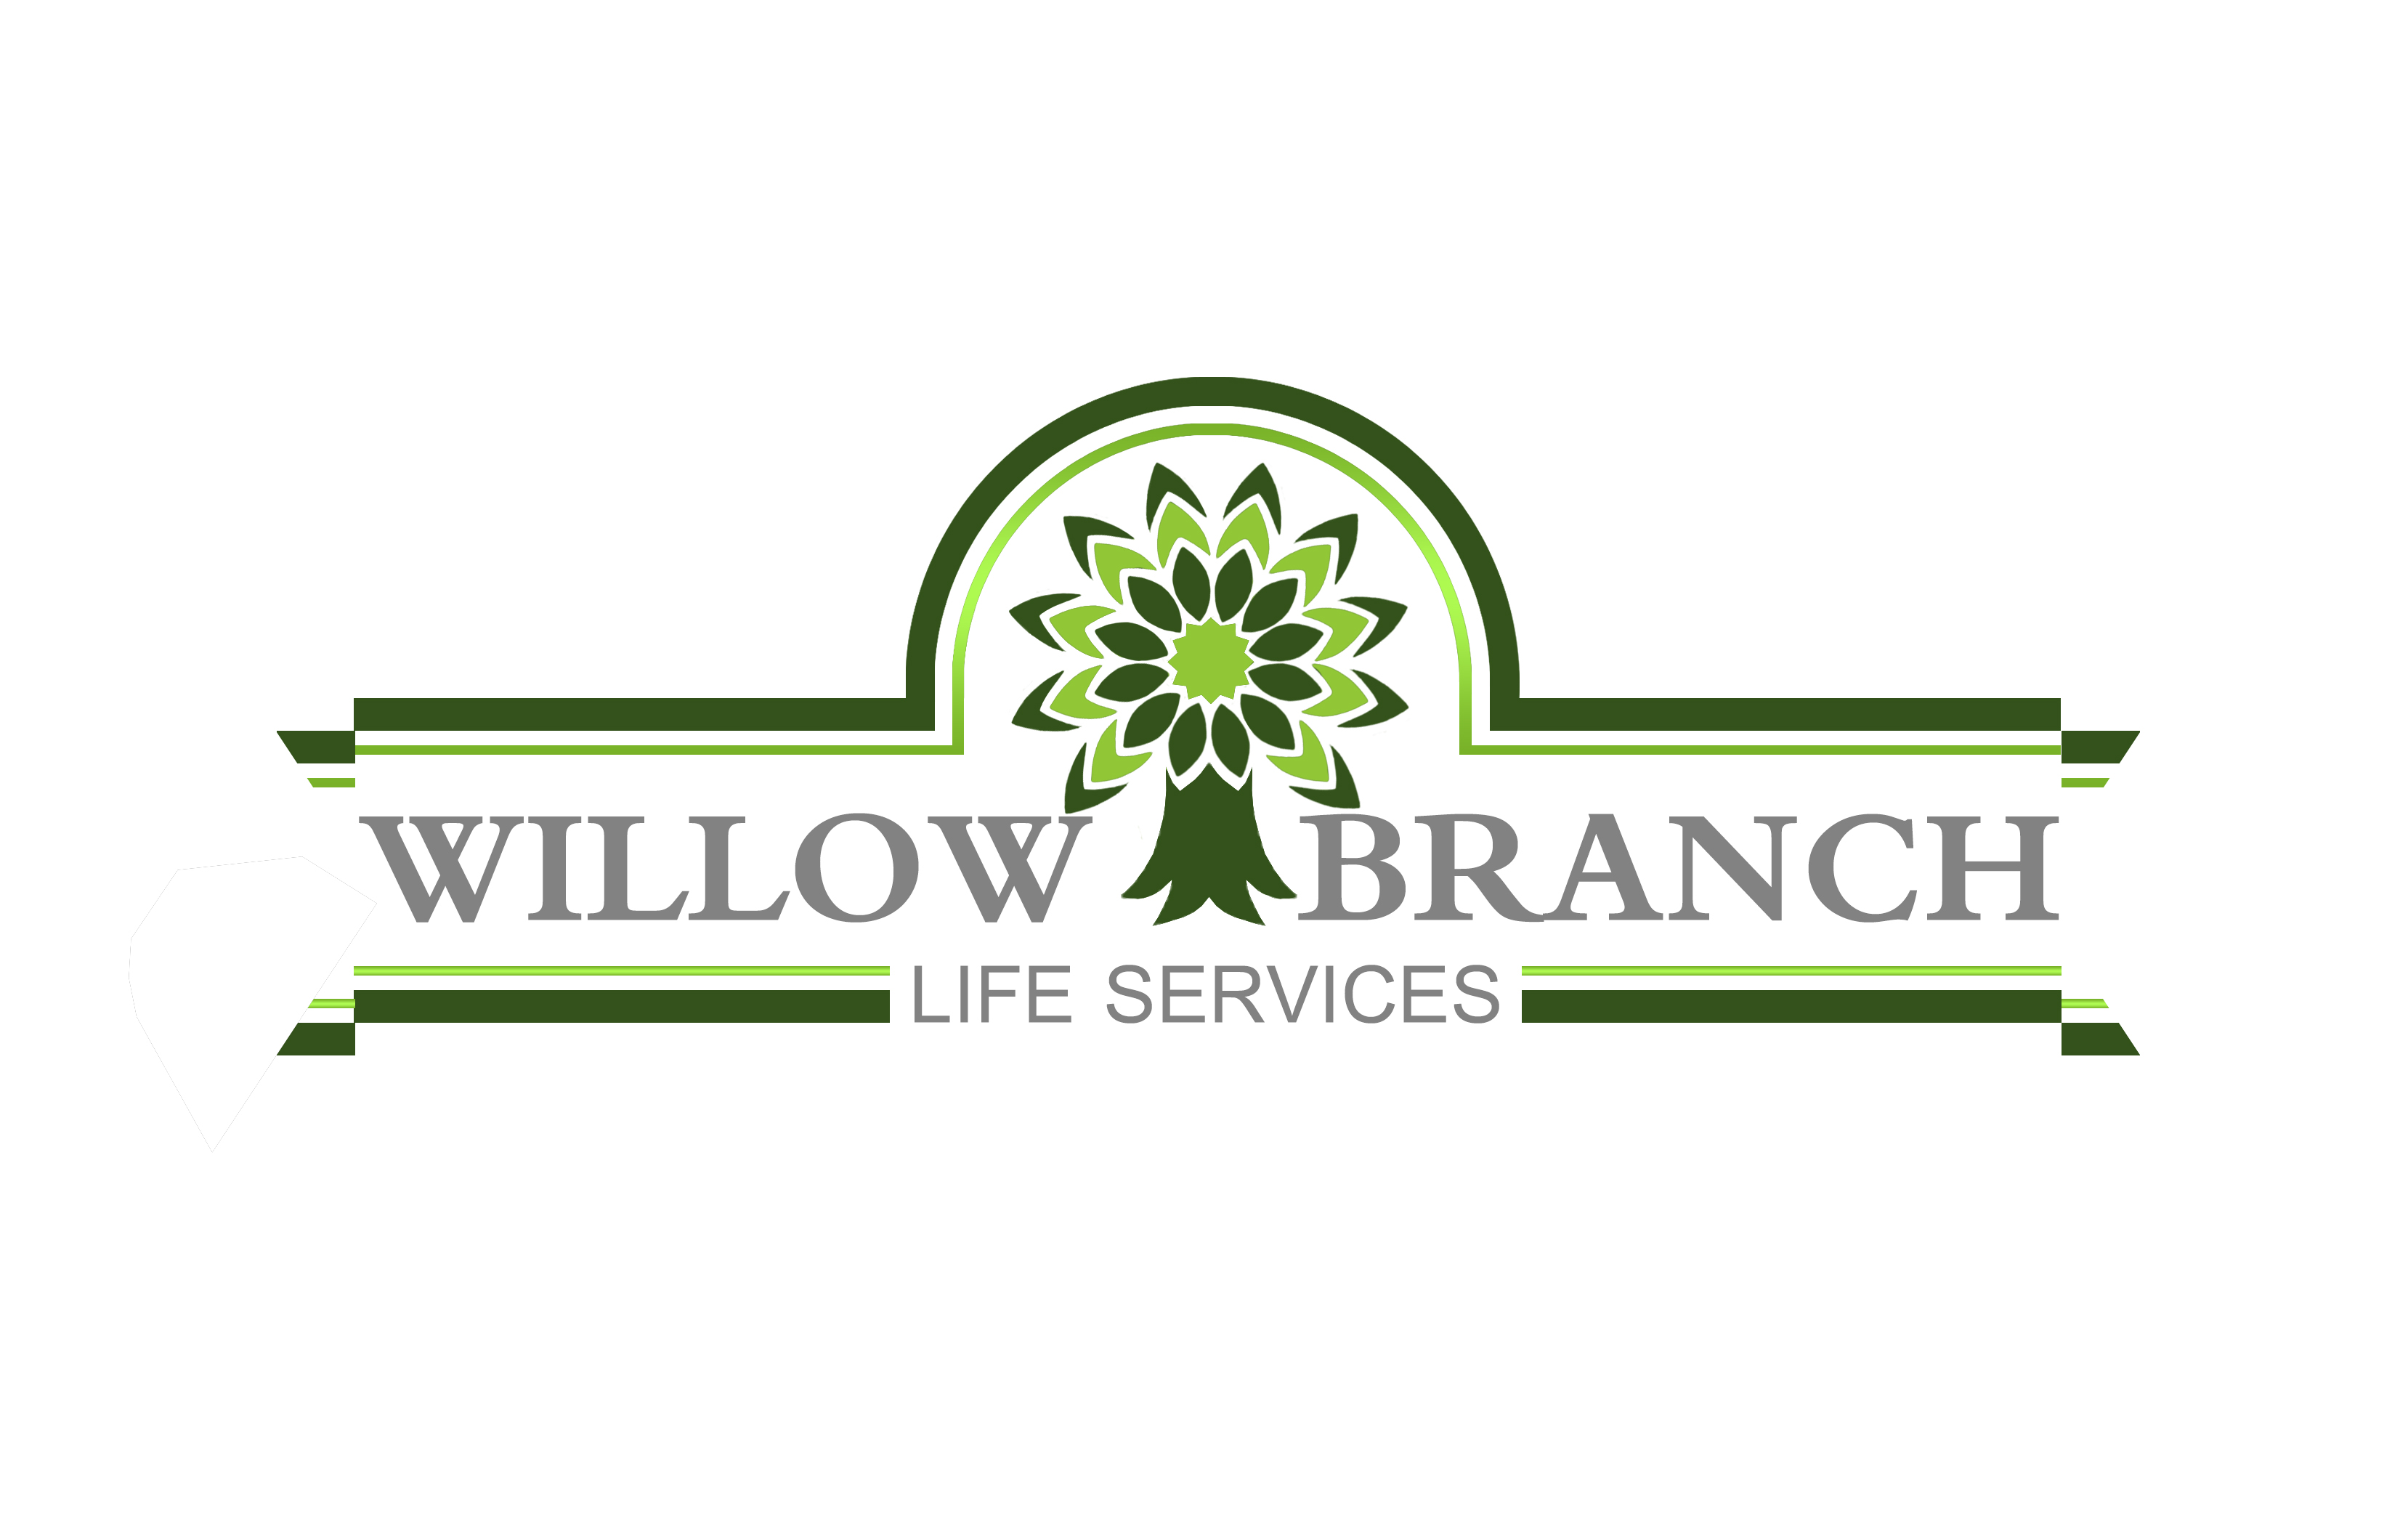 Logo Design by JSDESIGNGROUP - Entry No. 372 in the Logo Design Contest Artistic Logo Design for Willow Branch Life Service.